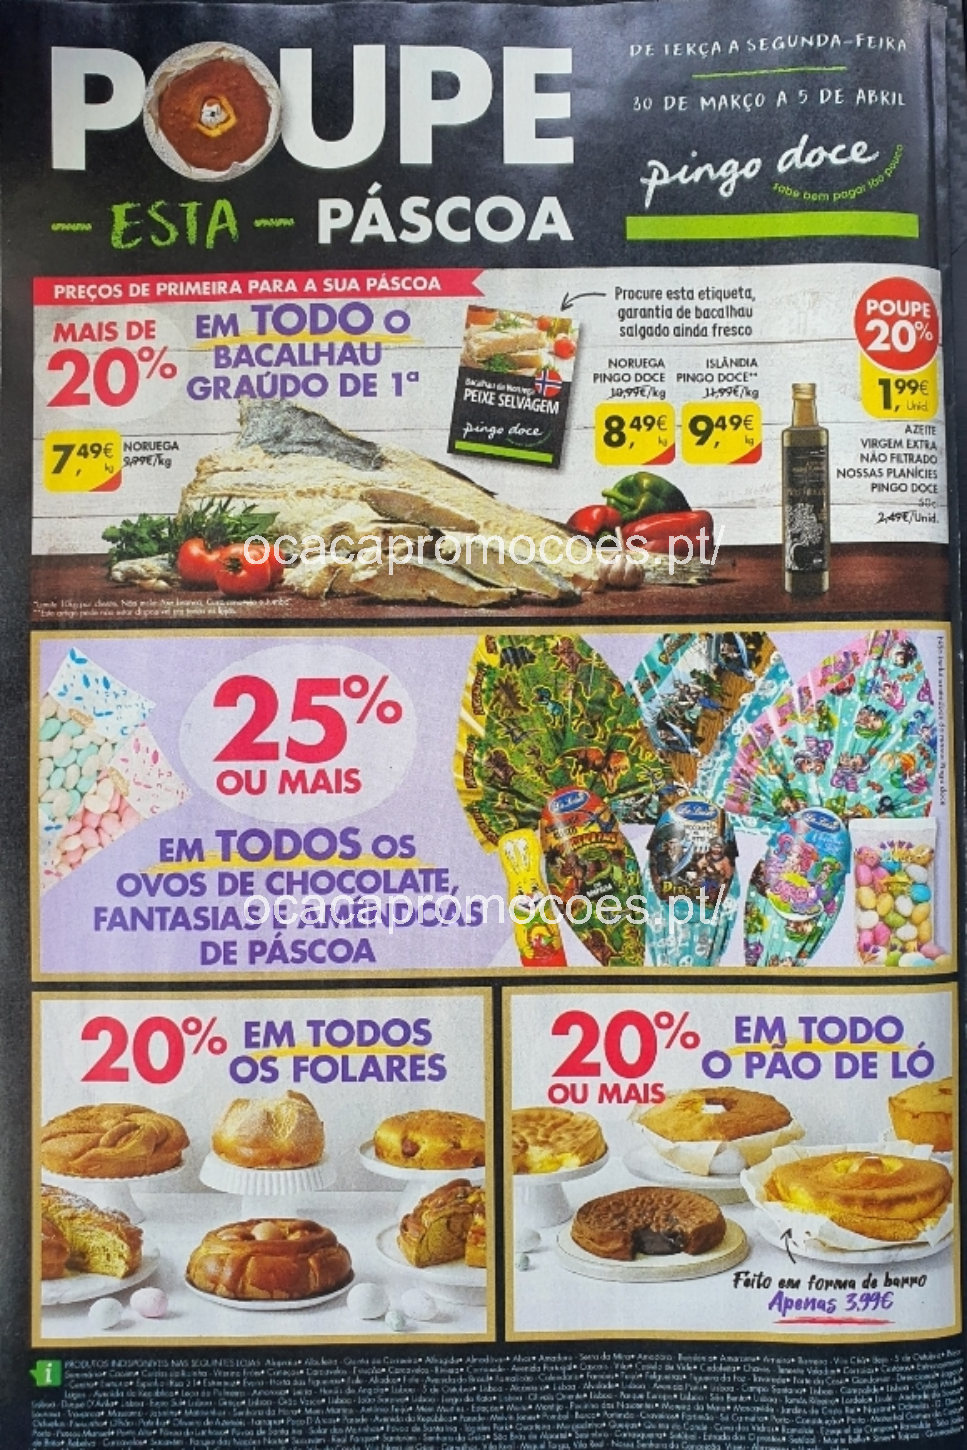 antevisao folheto pingo doce 30 marco 5 abril promocoes Page48